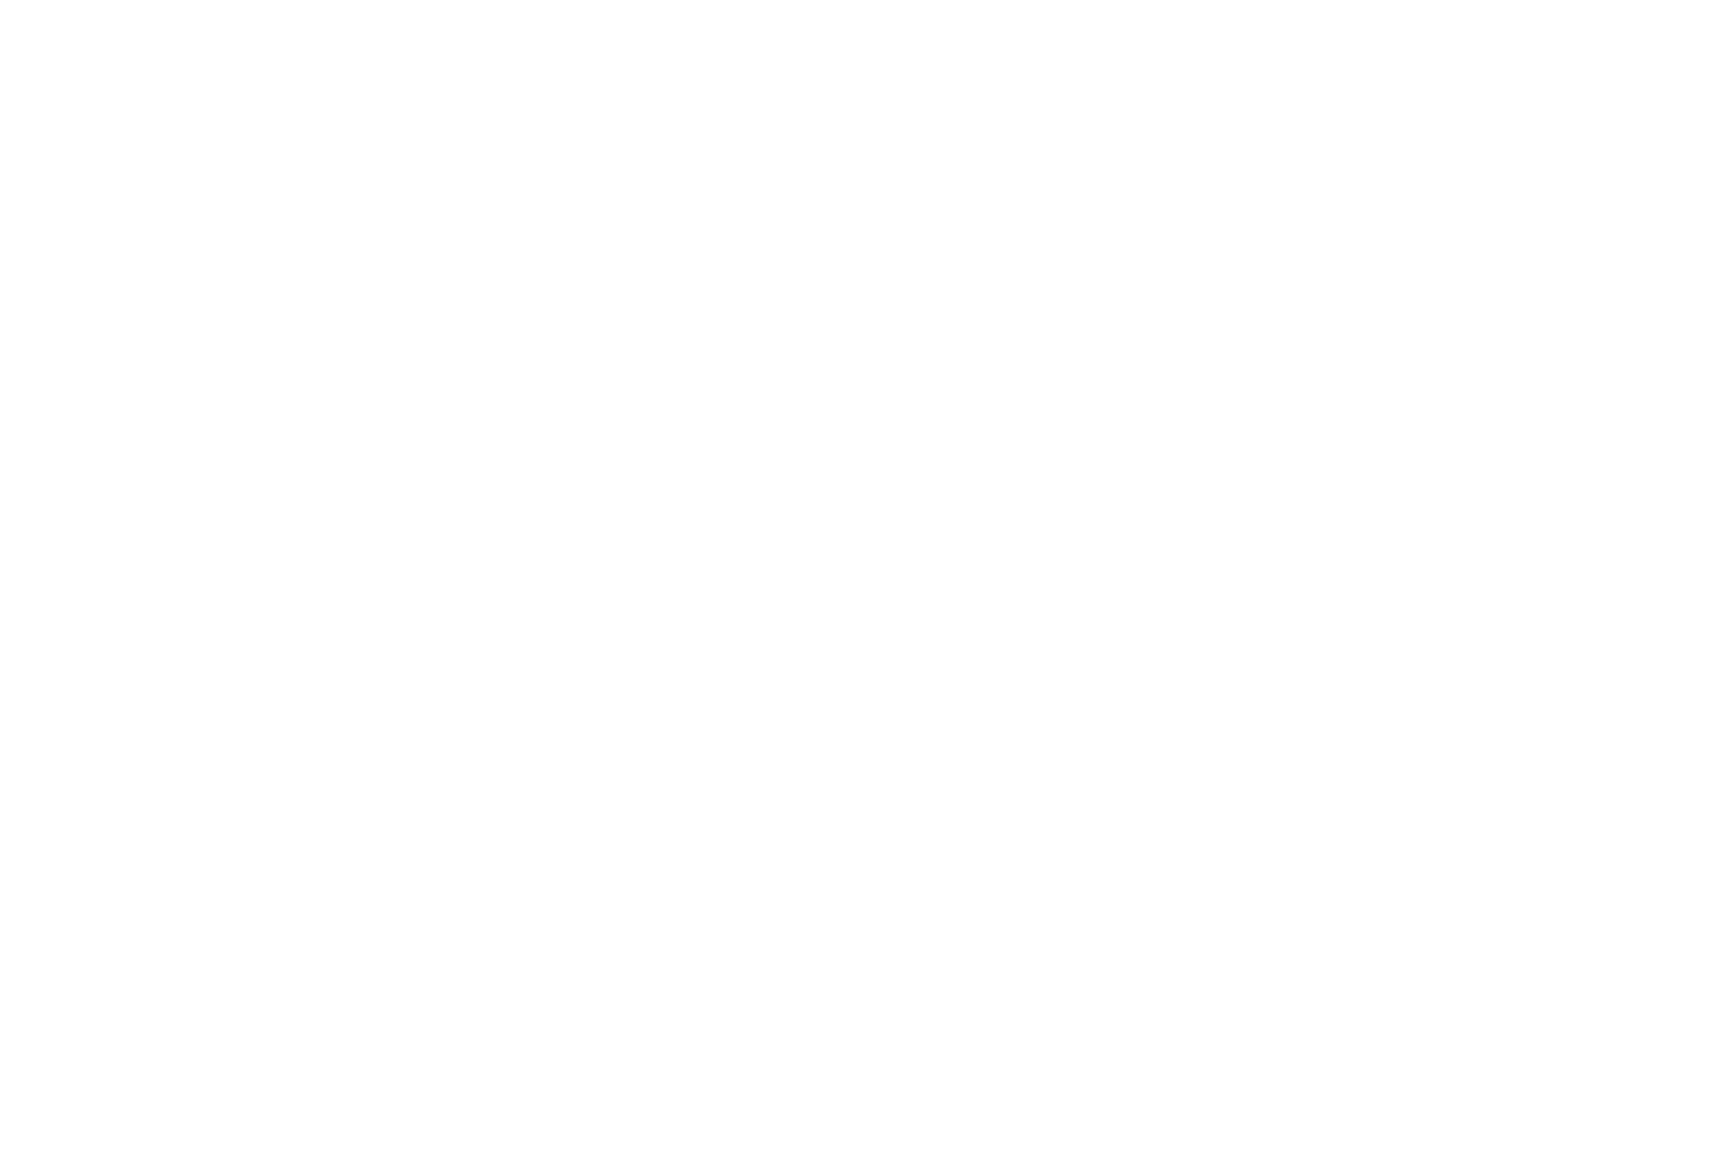 Best Sci-Fi Comedy Boobs and Blood International Film Festival 2020